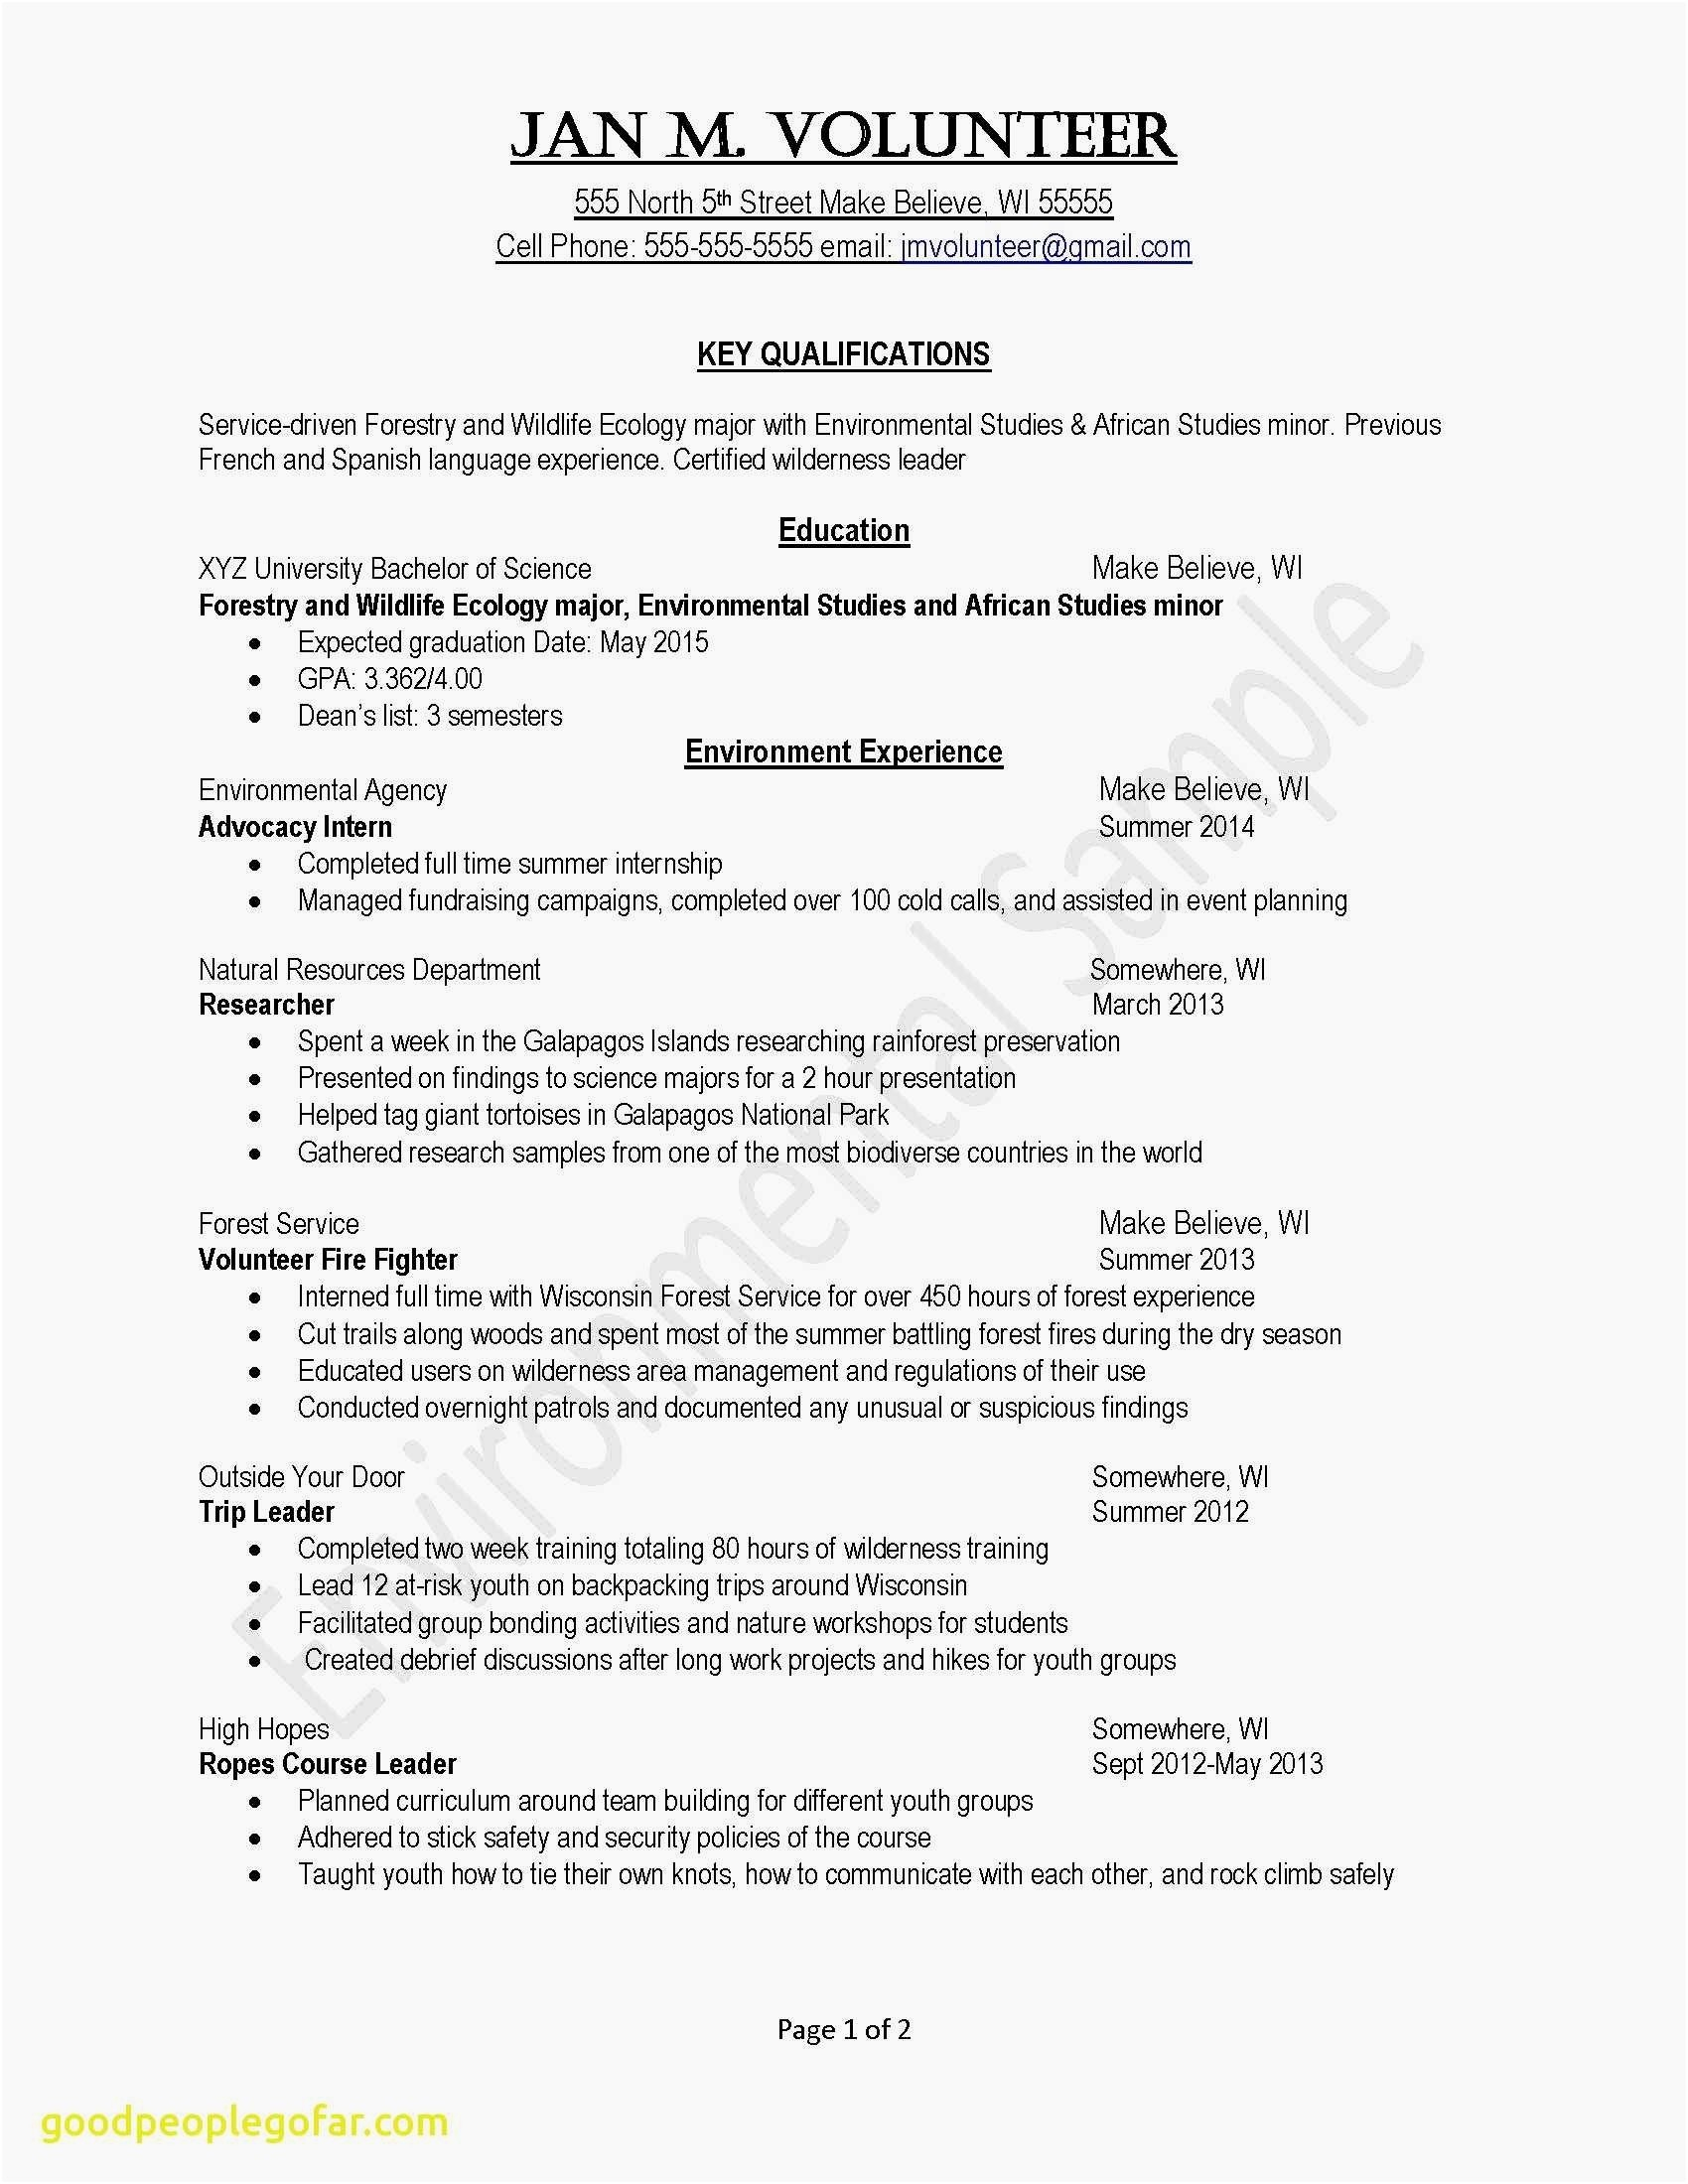 Great Skills for Resume - Skill Set Resume Best Awesome Examples Resumes Ecologist Resume